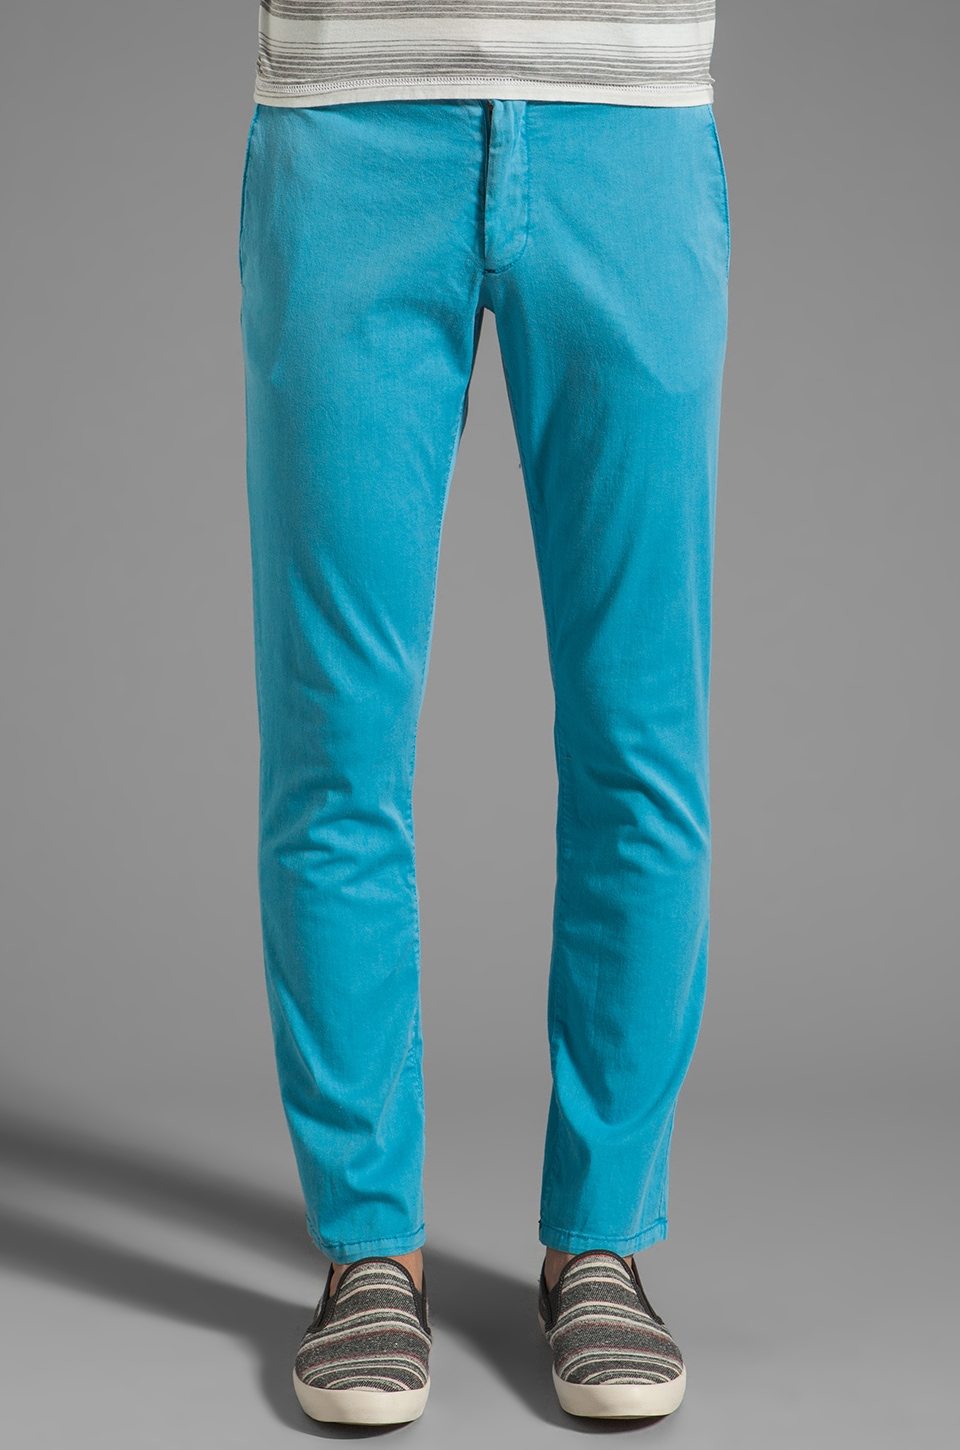 Cohesive & co. Casper Chino Pant in Turquoise